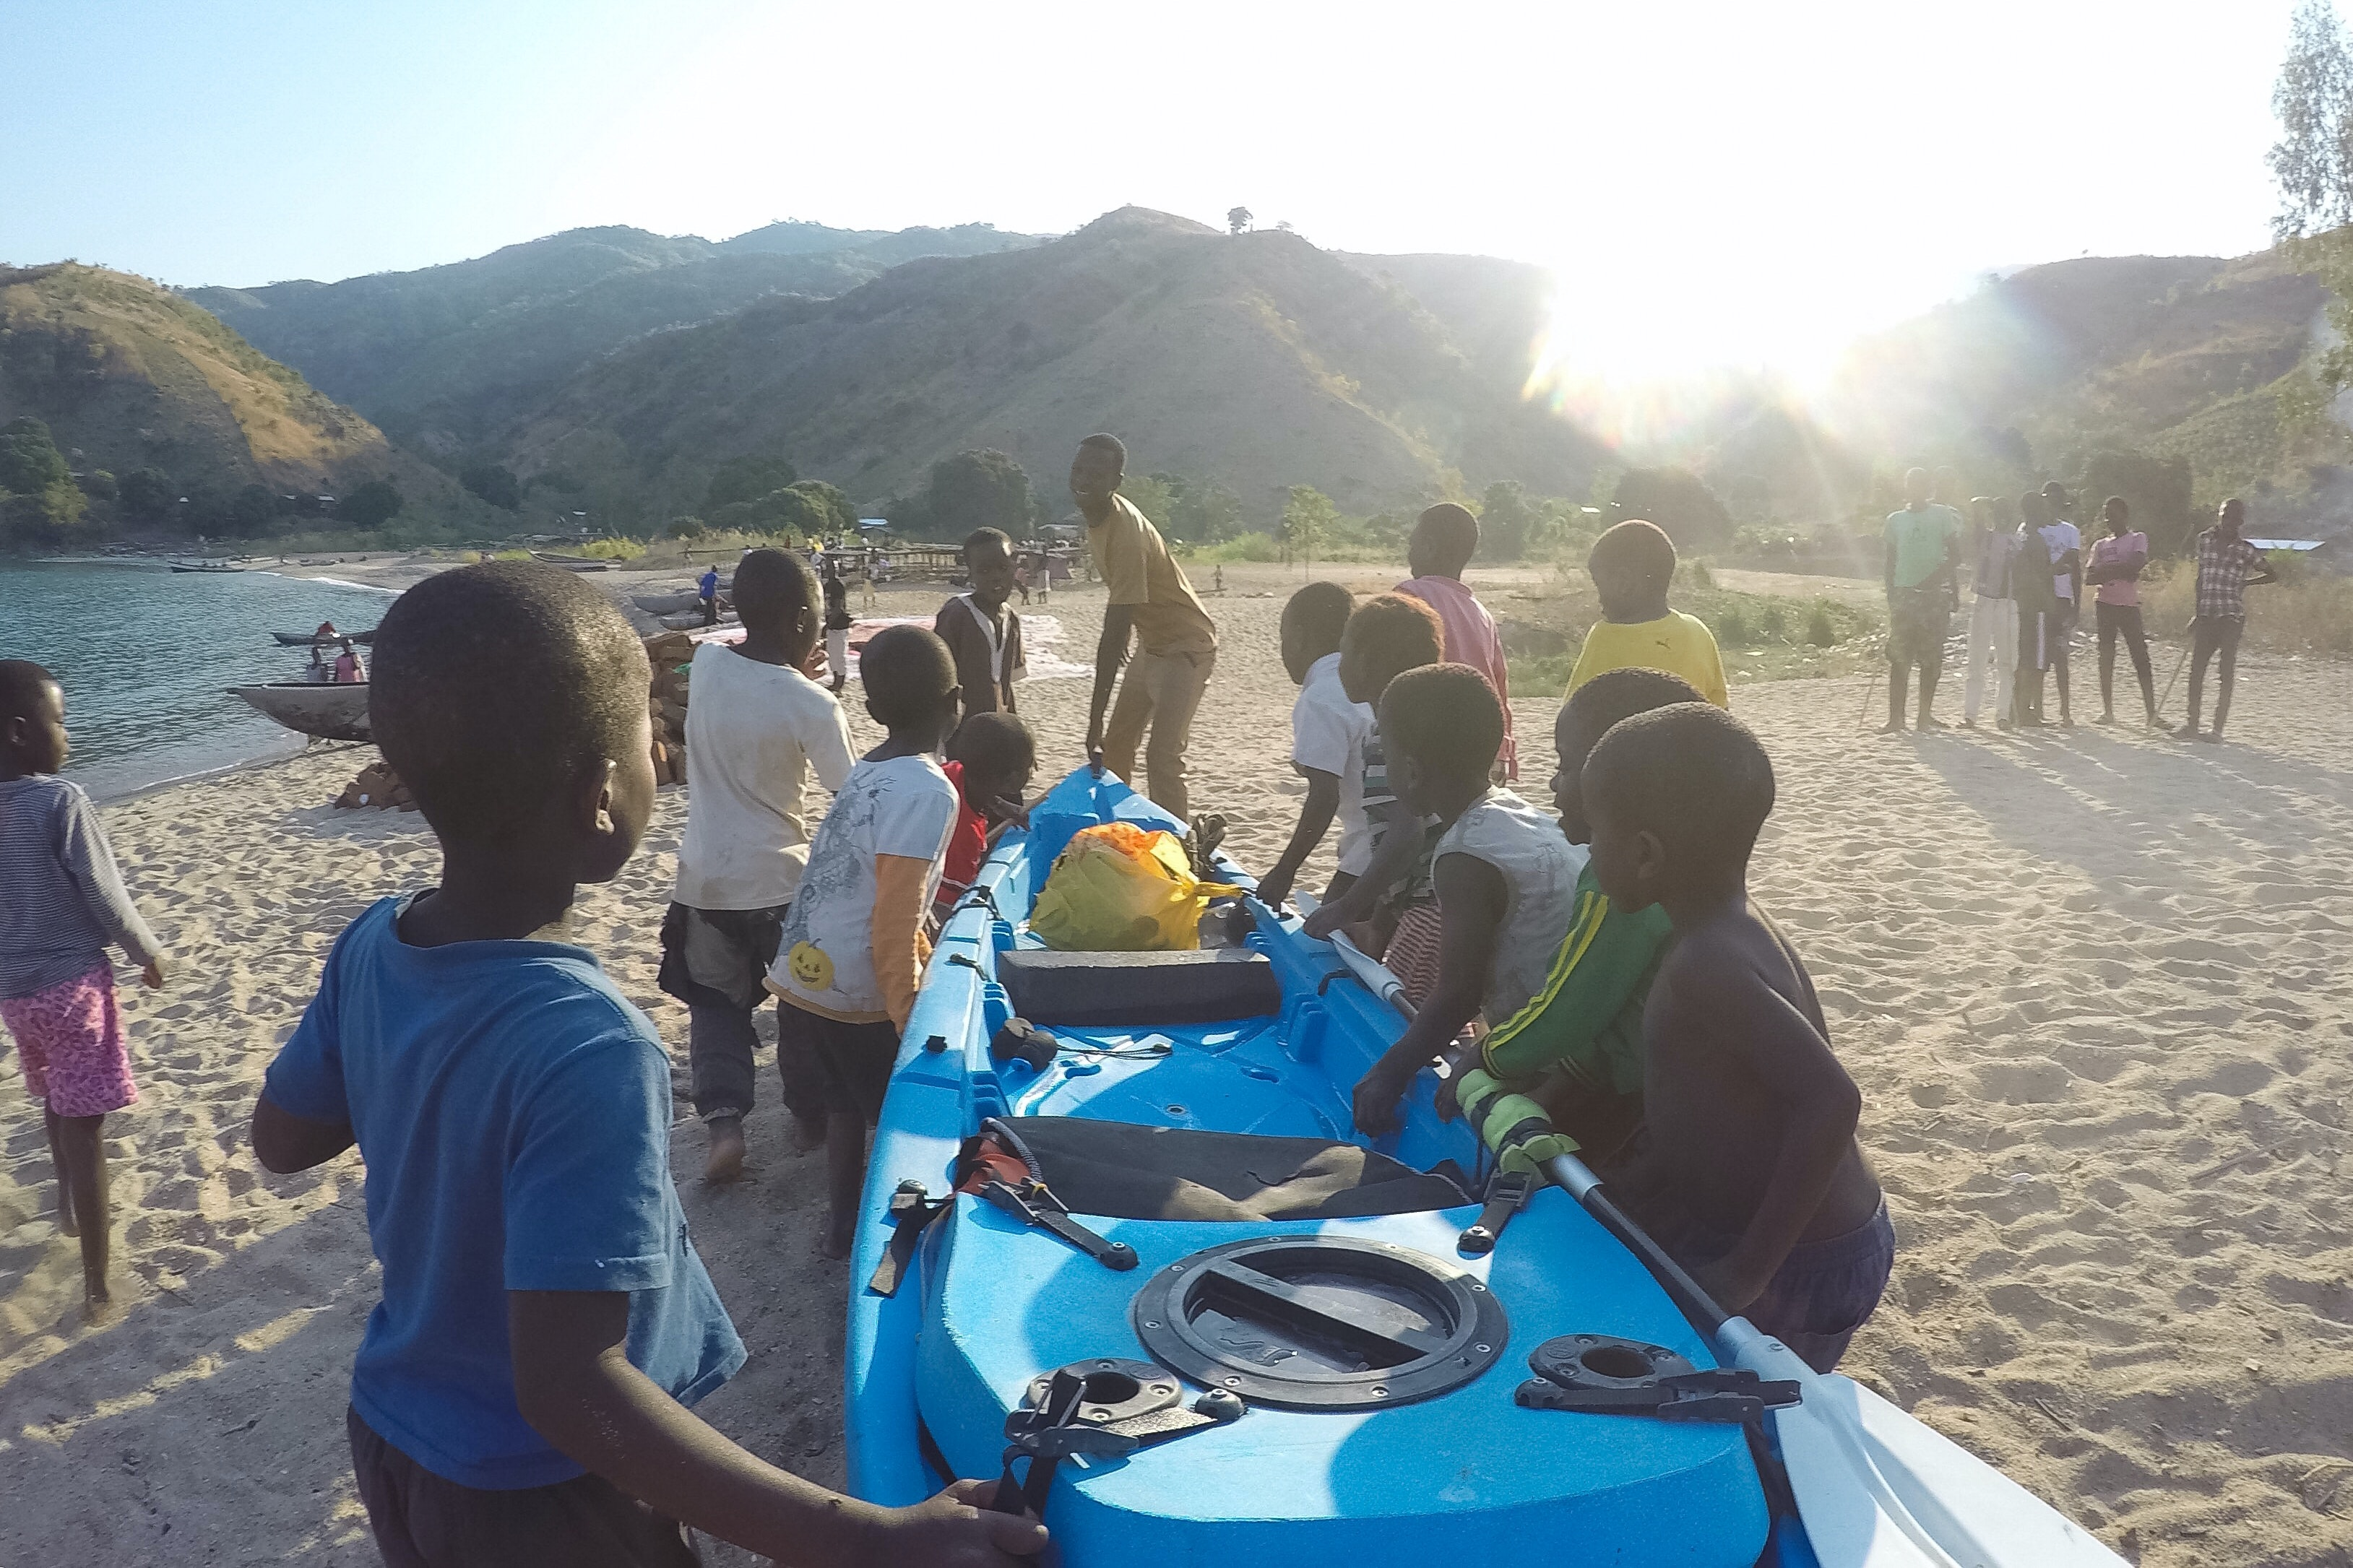 Village kids helping Rigby move his kayak, toward the end of his journey.